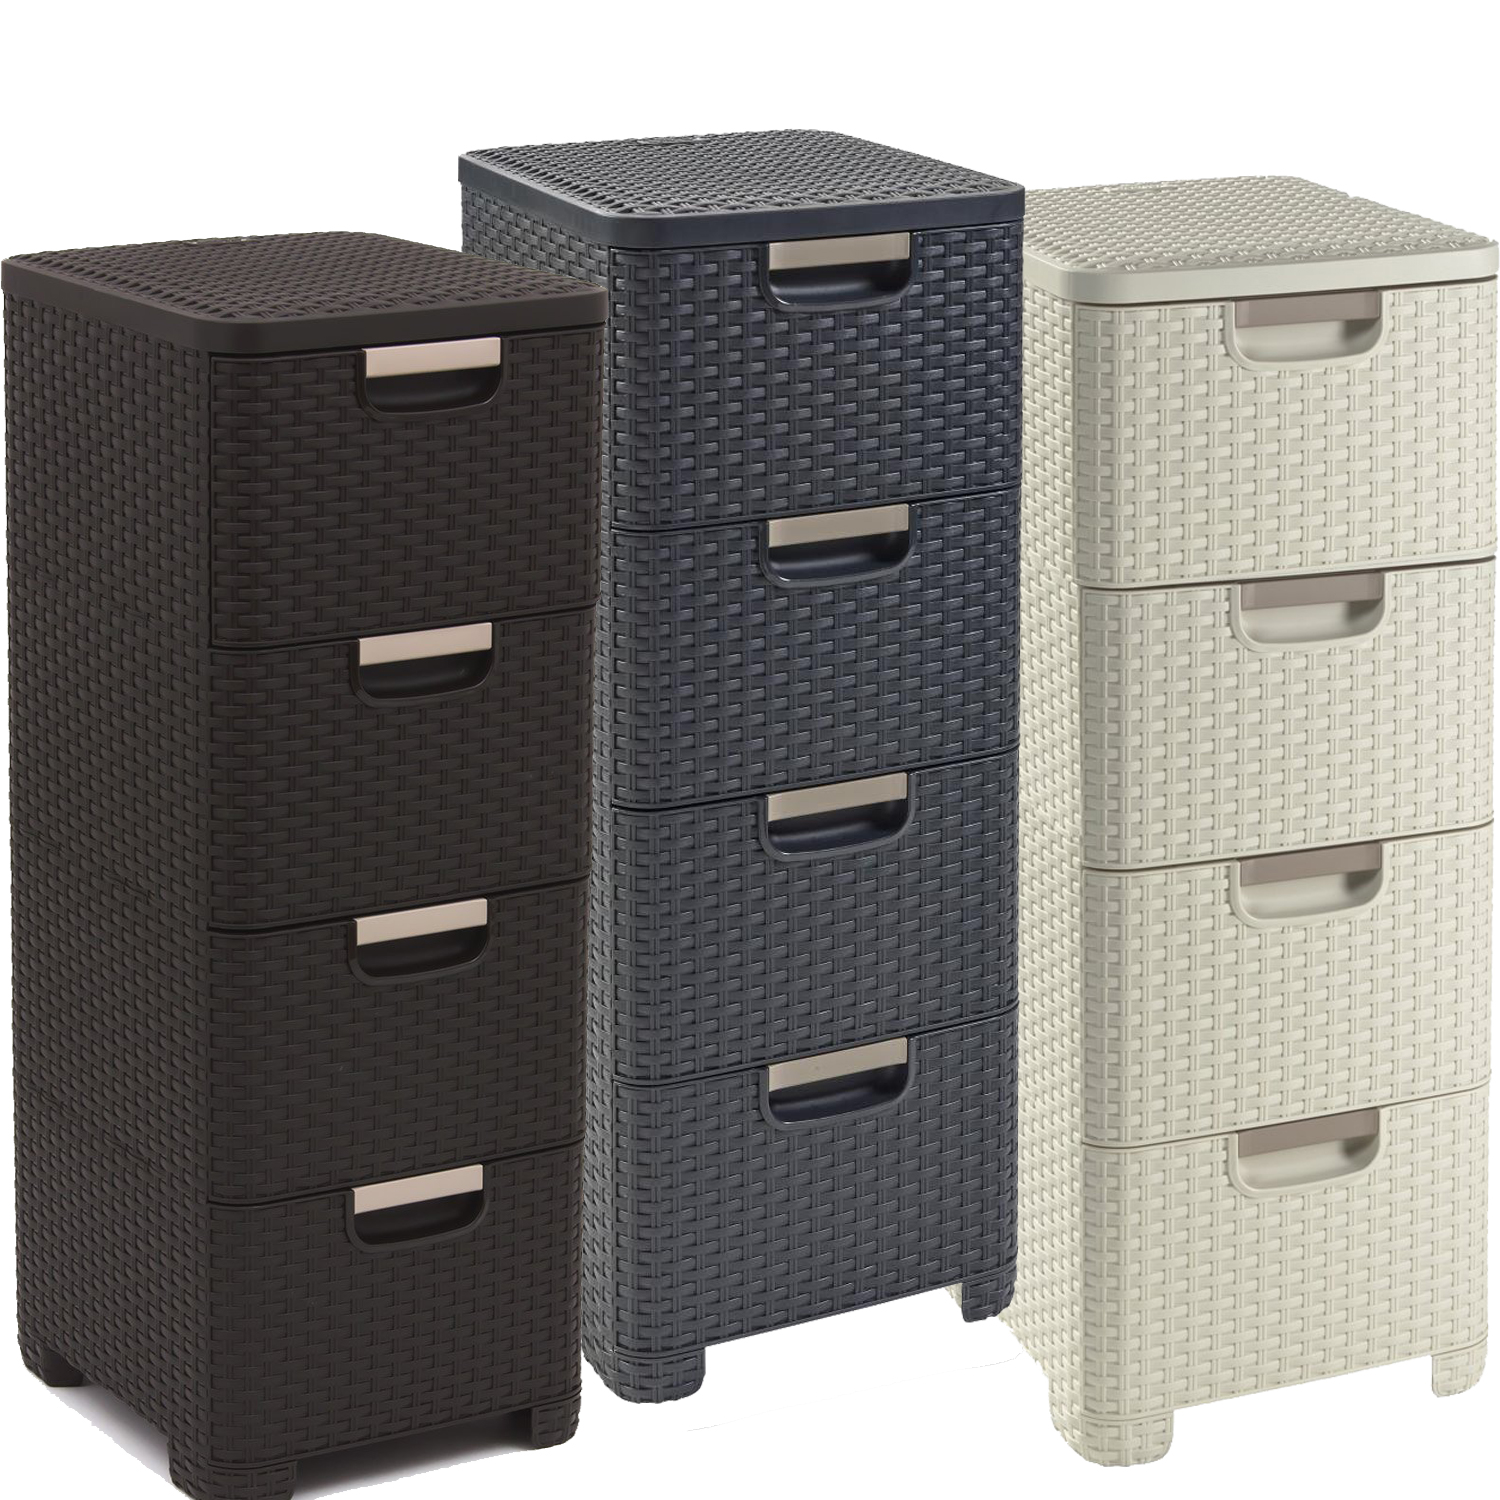 curver regal 4 schubladen schubladenregal korbregal kommode rattan optik. Black Bedroom Furniture Sets. Home Design Ideas